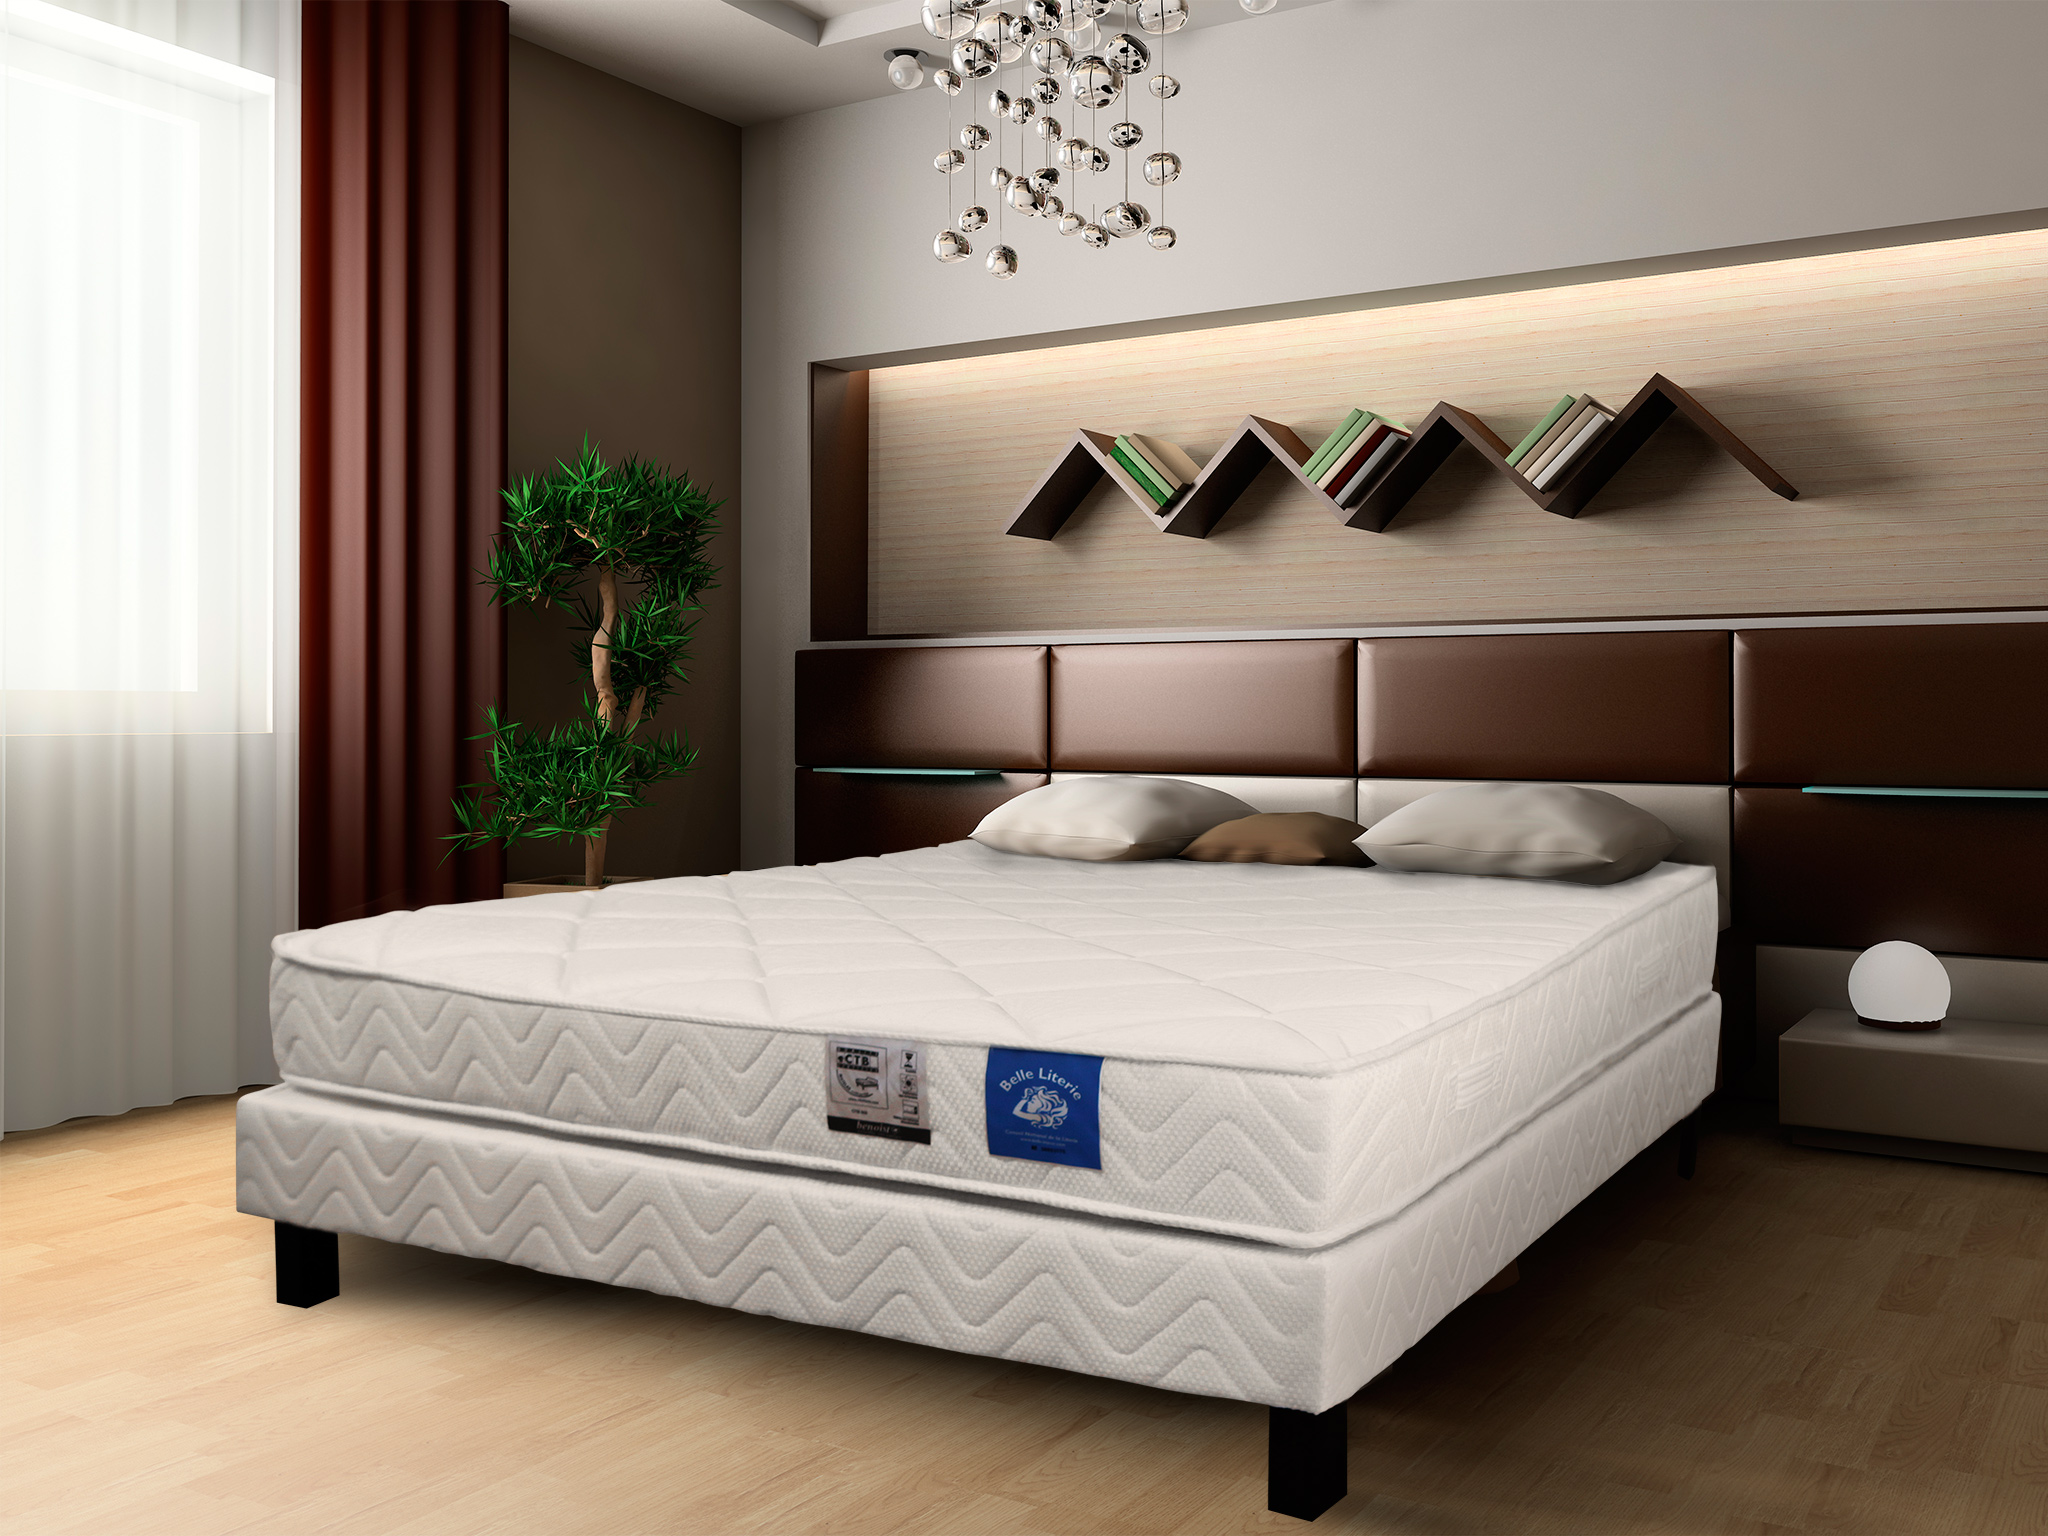 matelas latex 90x190 avec garnissage m moire de forme belle literie. Black Bedroom Furniture Sets. Home Design Ideas